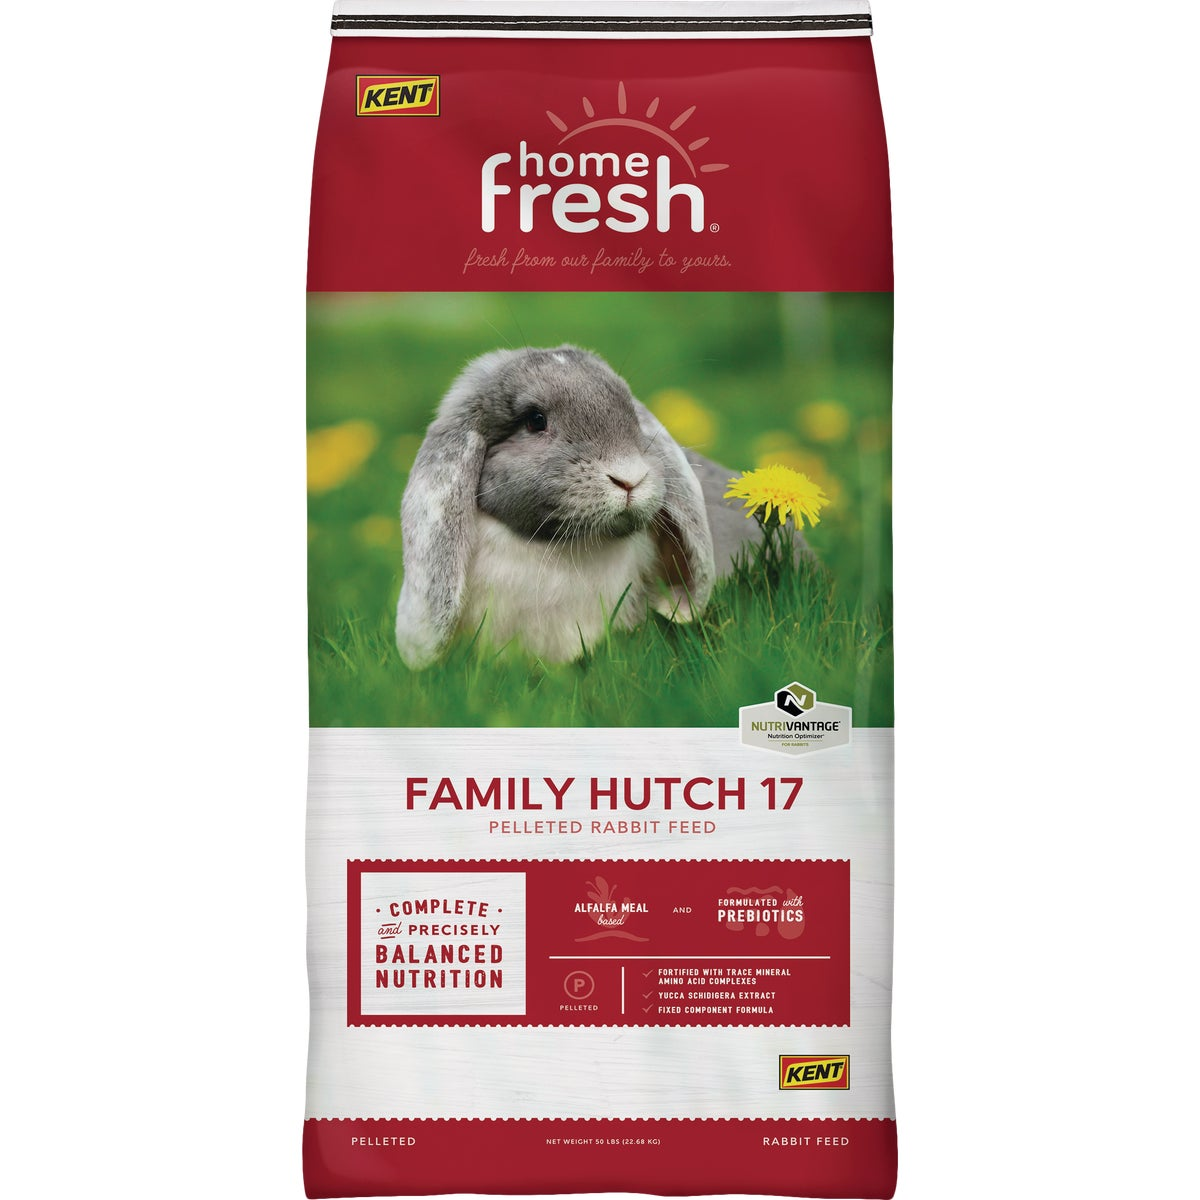 25LB TOPSHOW RABBIT FEED